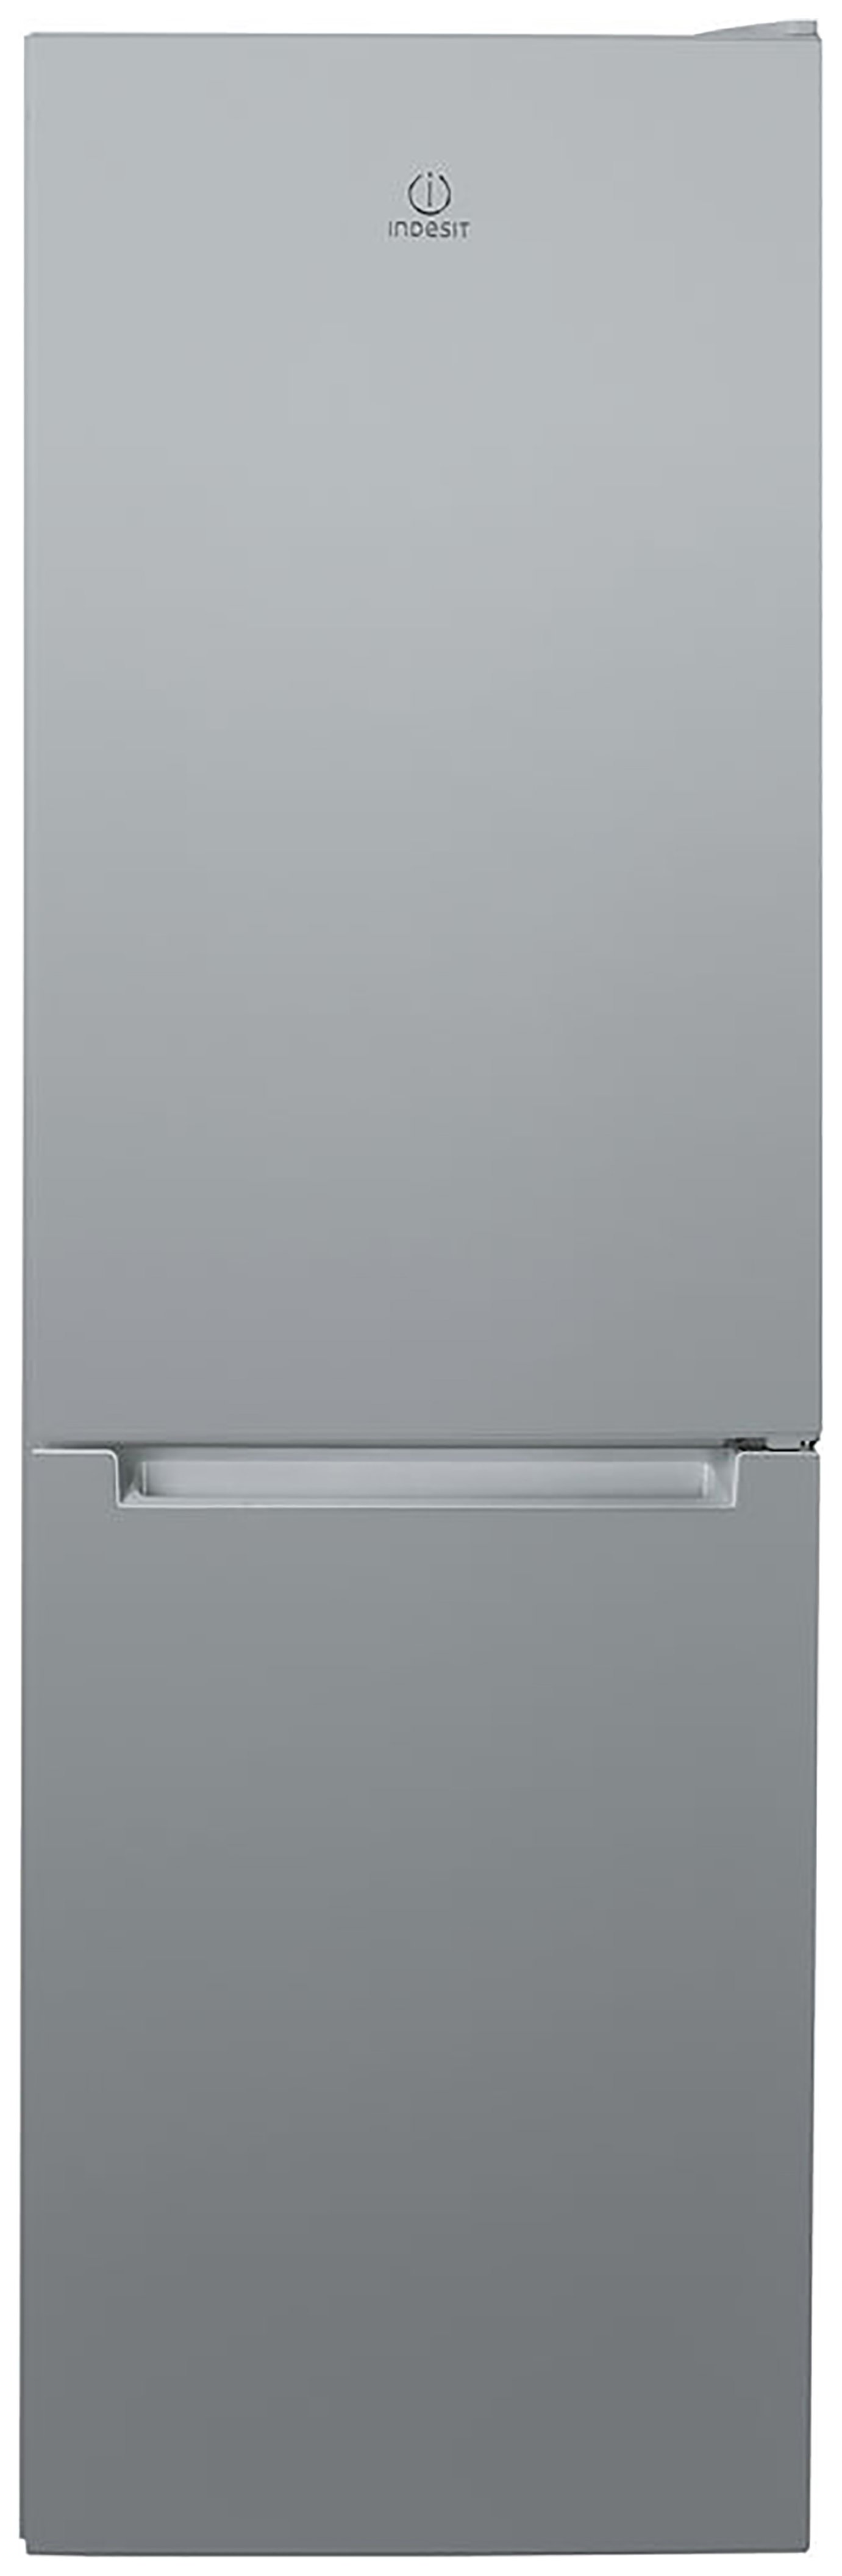 Indesit LR8S1S Fridge Freezer - Silver